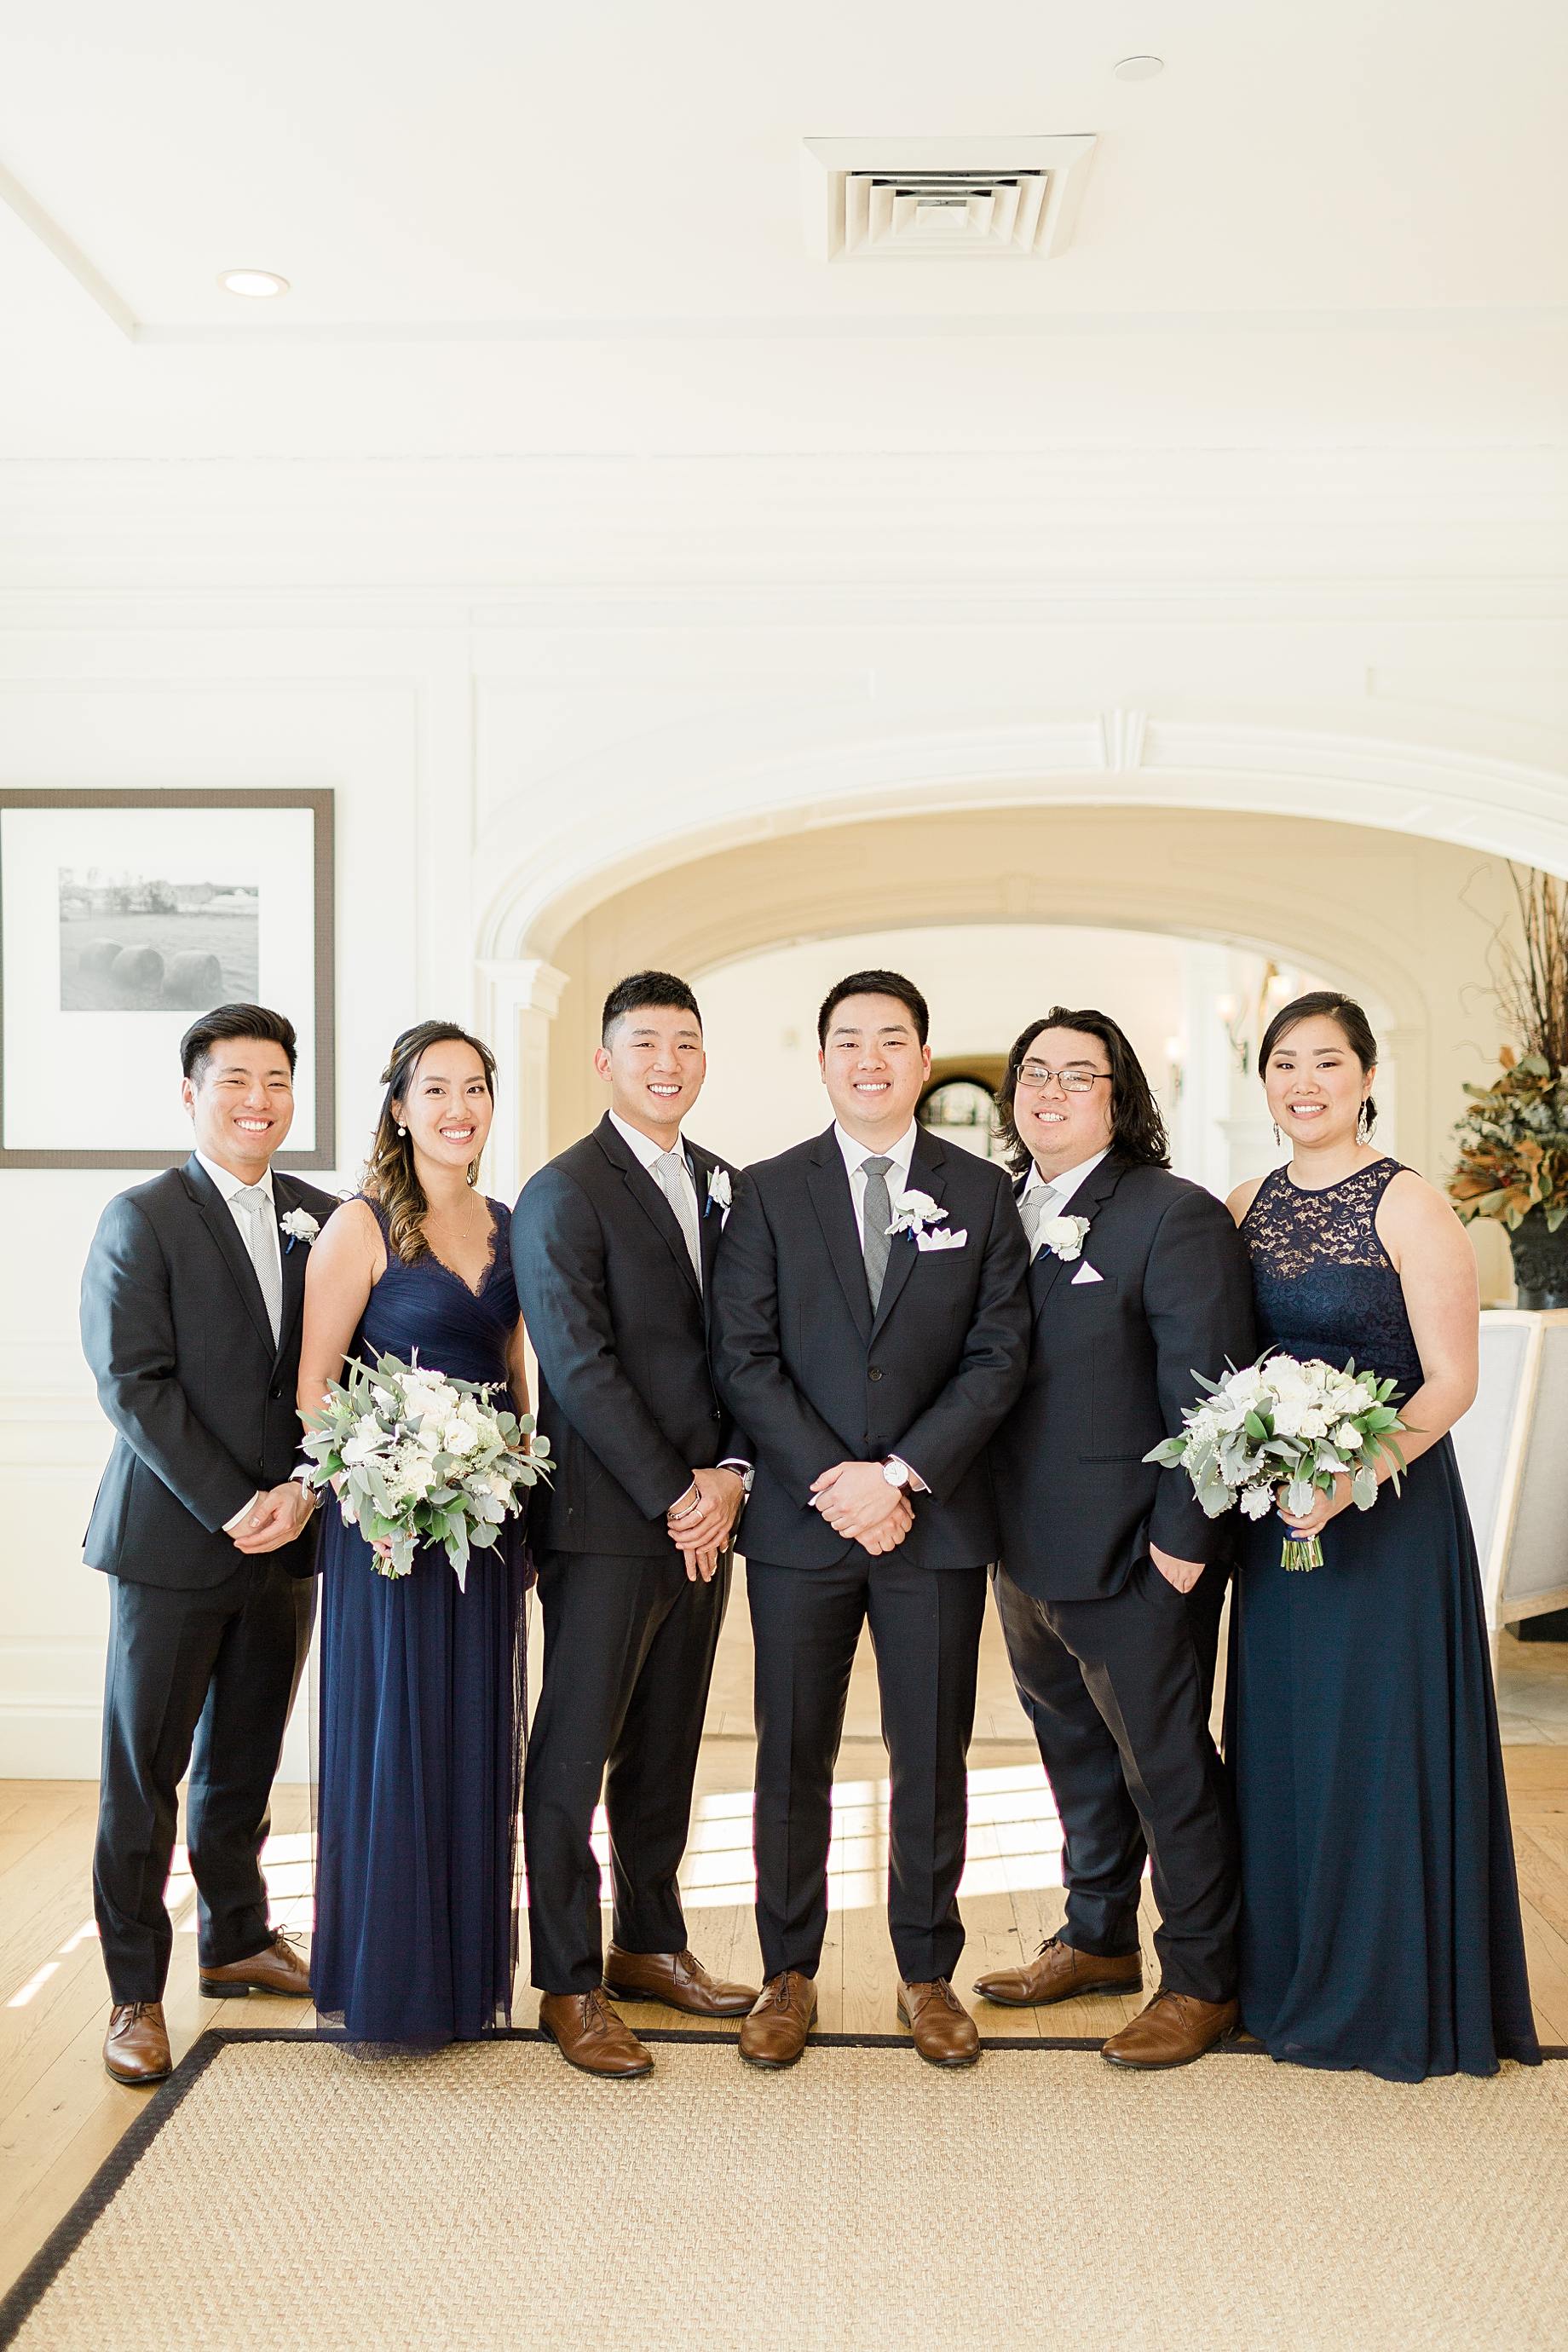 Elegant Winter Wedding at French Creek Golf Club } Groomsmen attire from The Black Tux